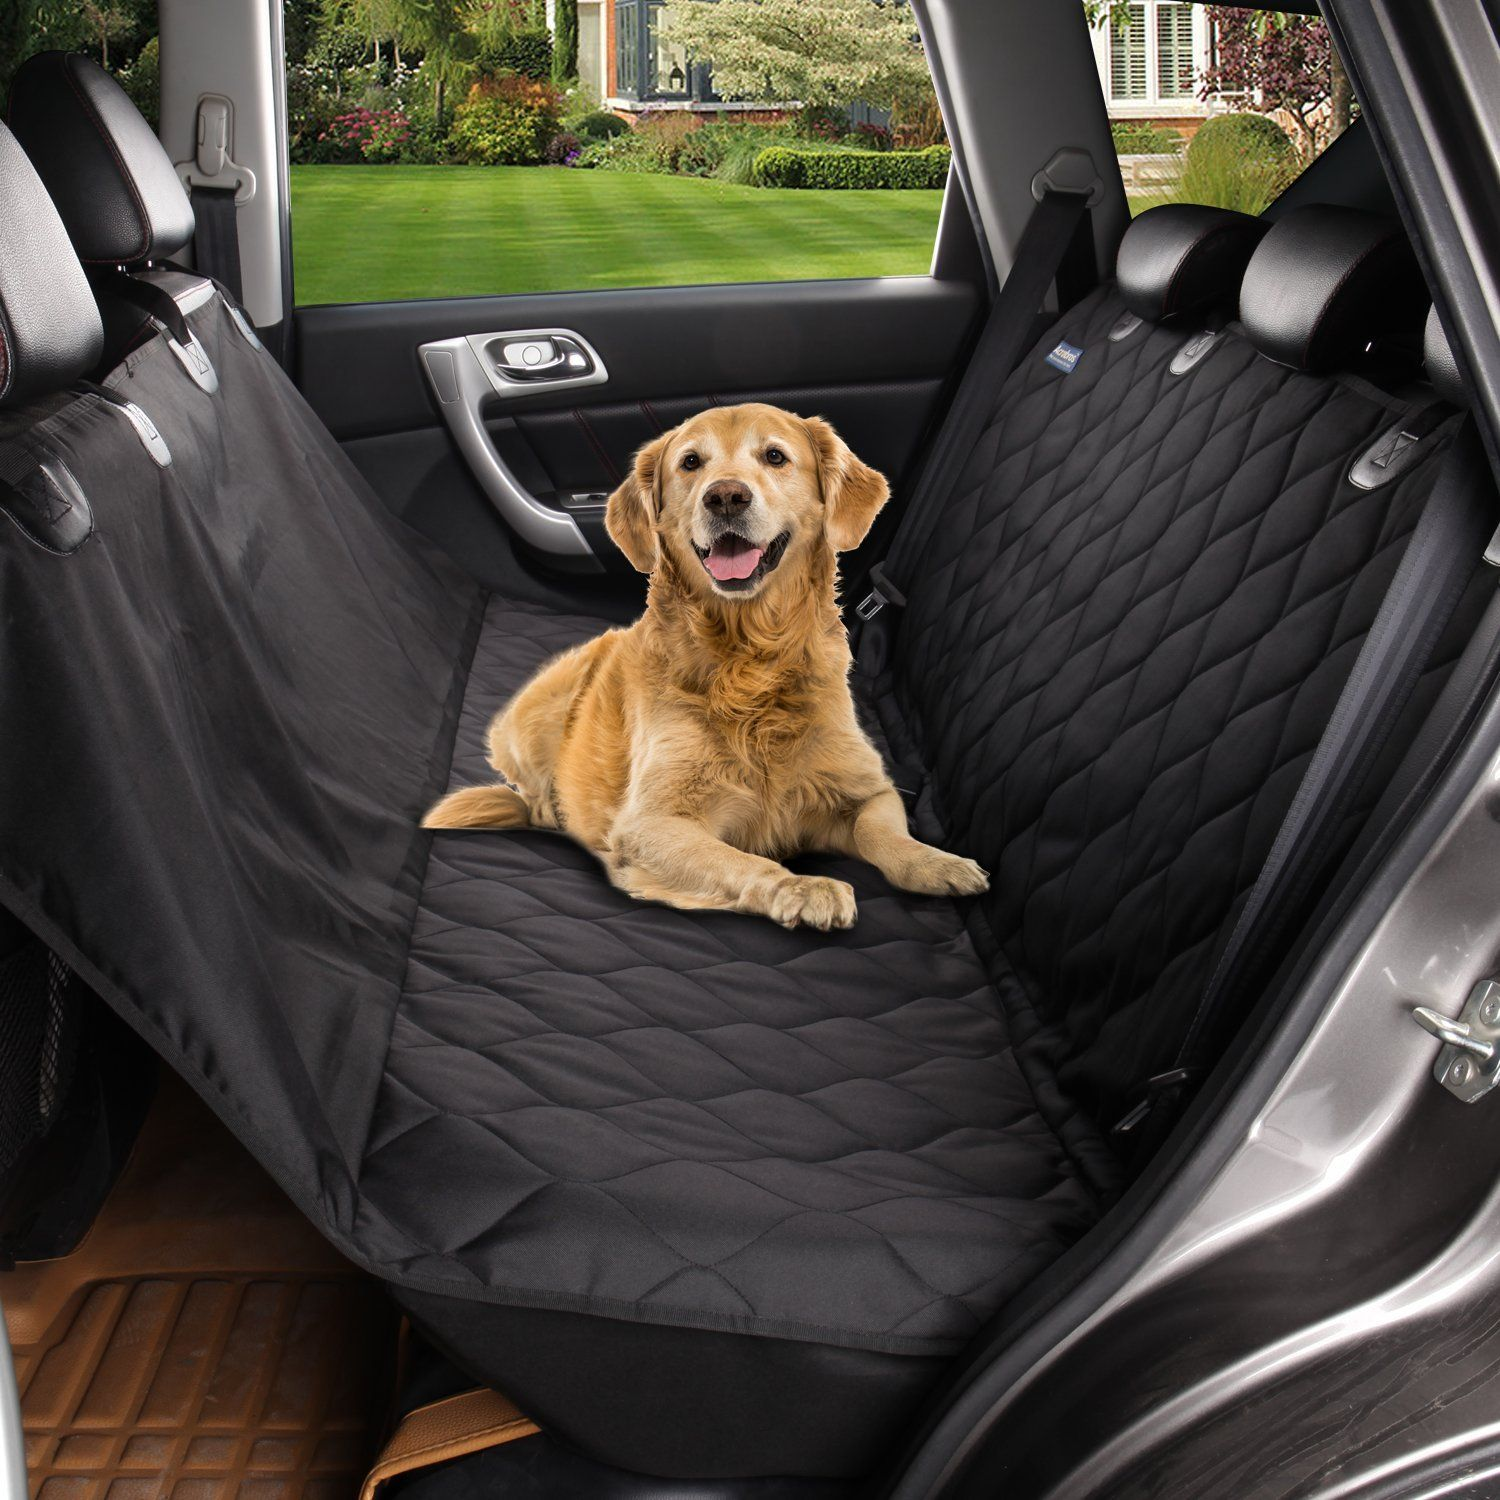 window non mat back waterproof slip quilted accessories in home viewing cover from seat carriers protector blanket pet car hammock item mesh dog